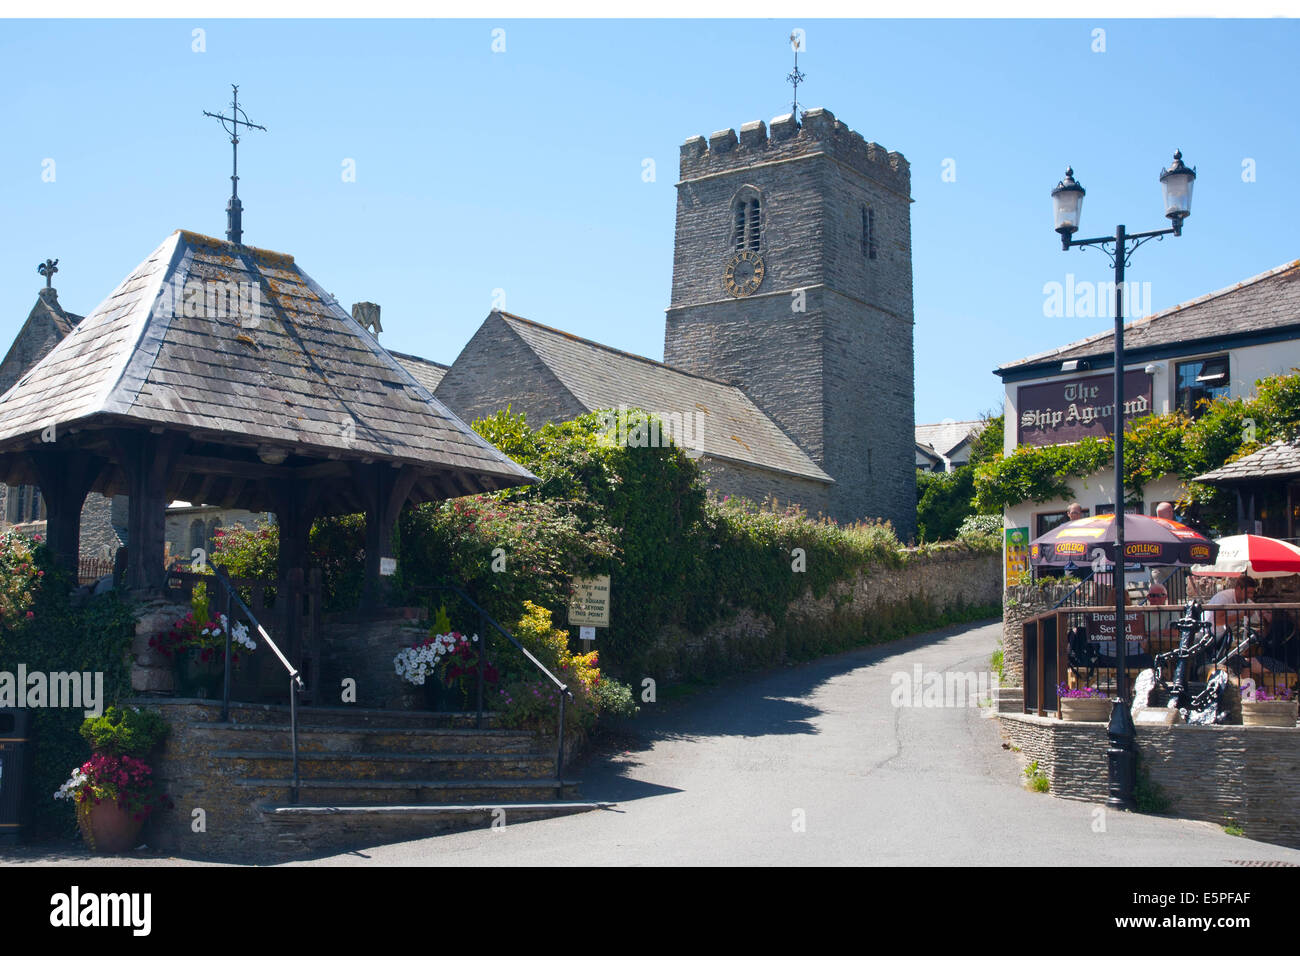 Mortehoe village, Church and The Ship Aground pub, North Devon - Stock Image